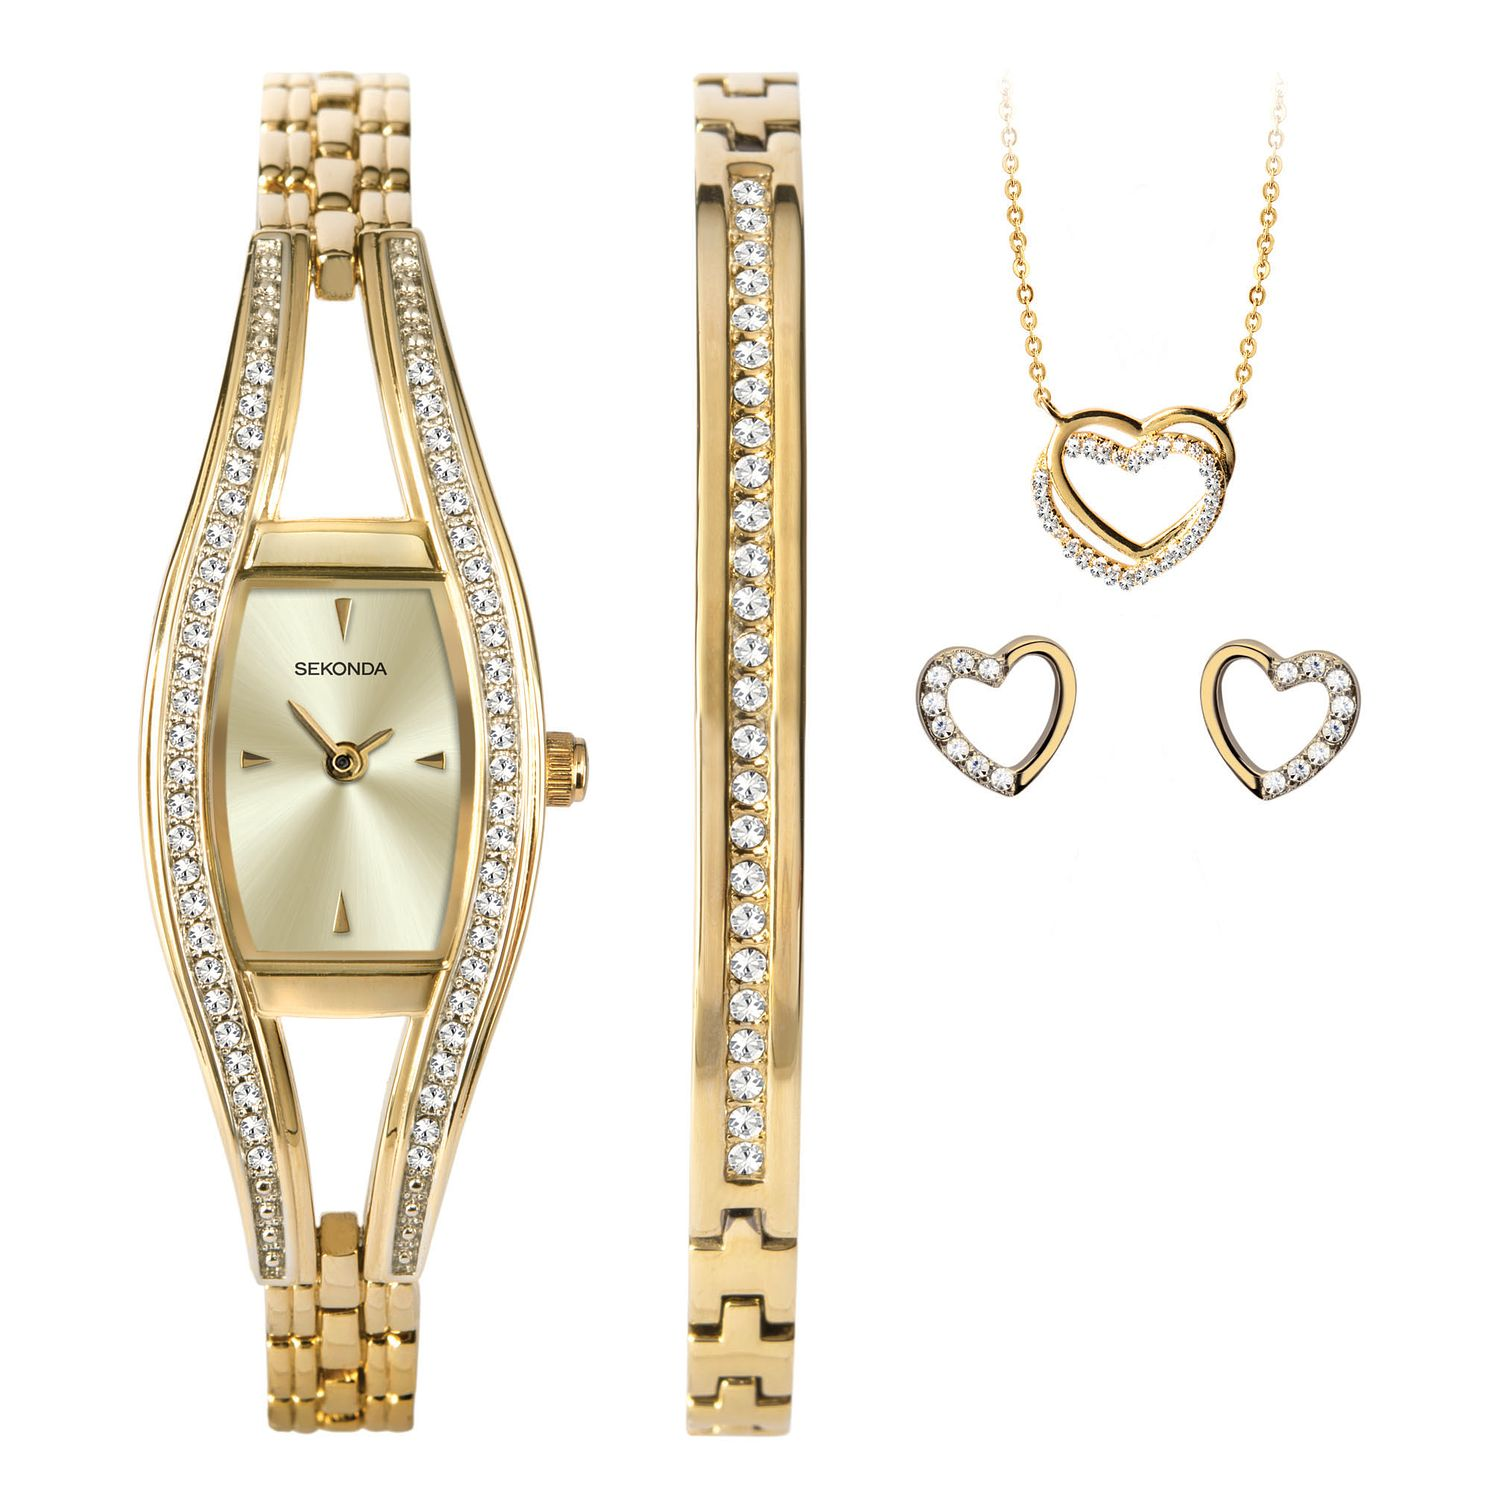 Sekonda Crystal Heart Ladies' Watch & Jewellery Gift Set - Product number 5320488